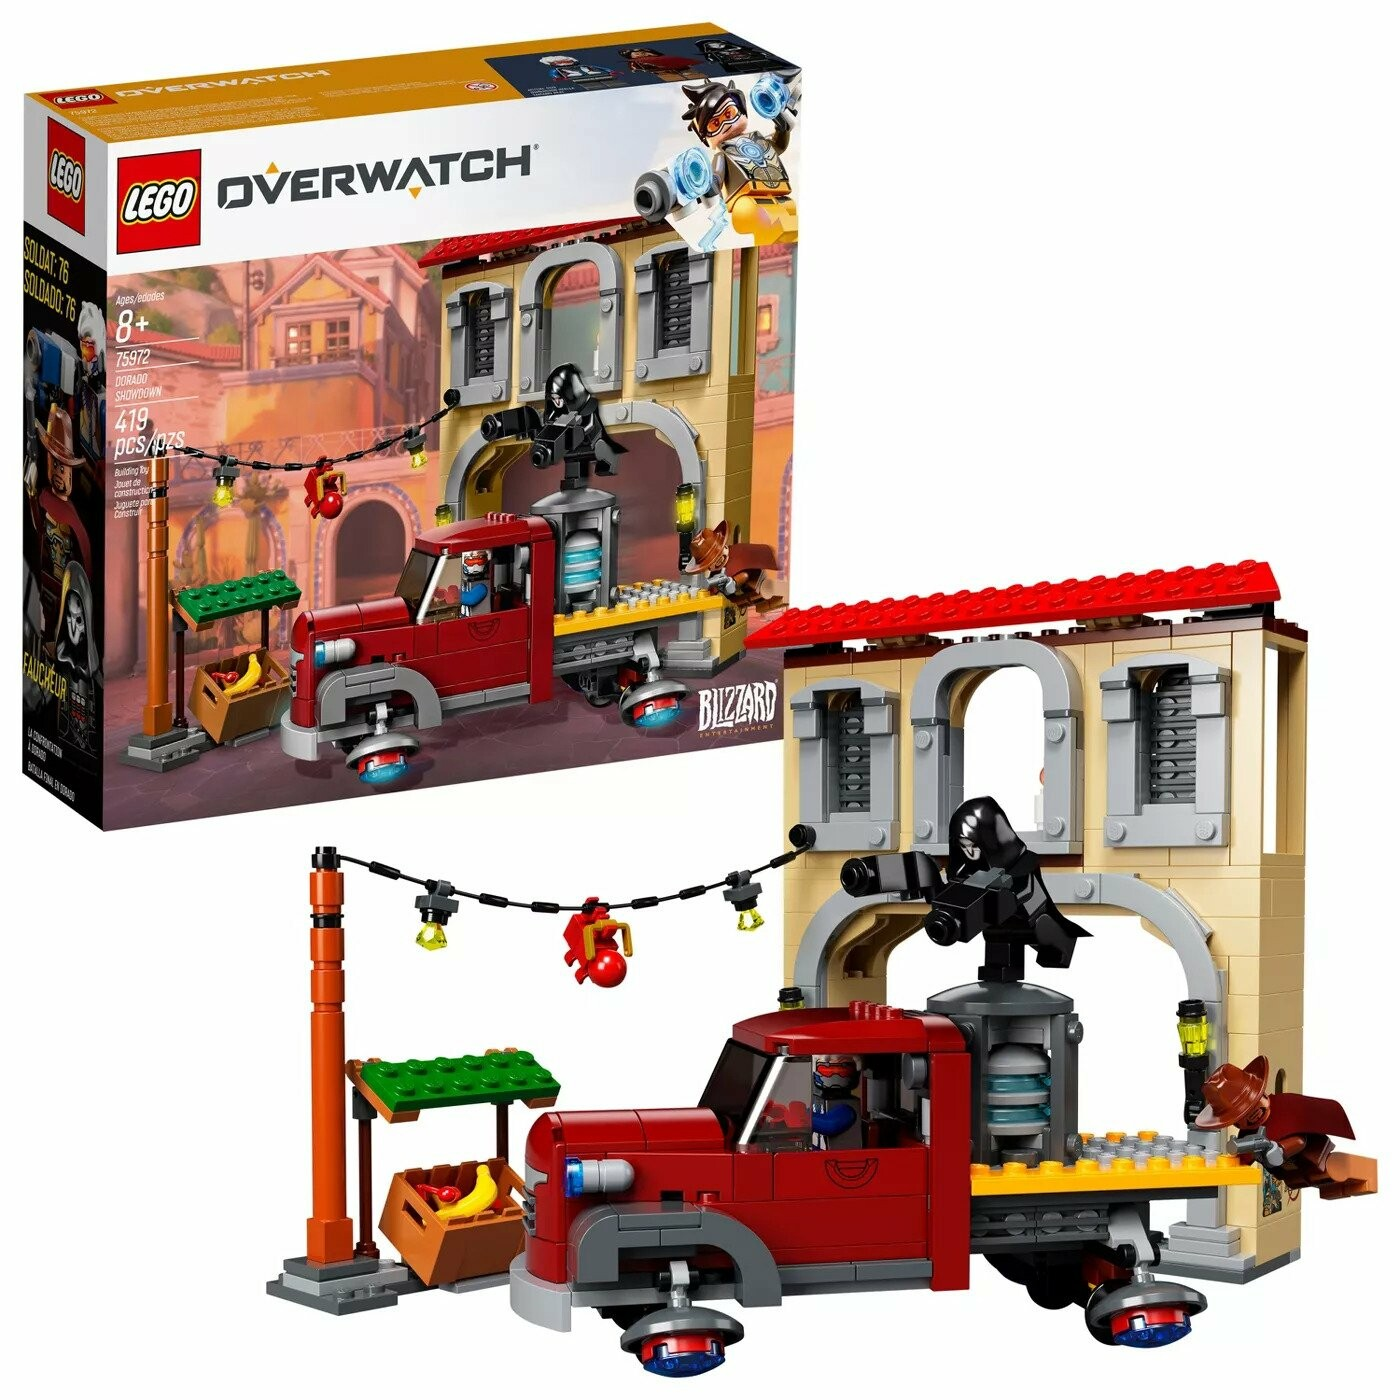 EXTRA: Could not resist showing this here, LEGO made a set featuring the payload I worked on! :D